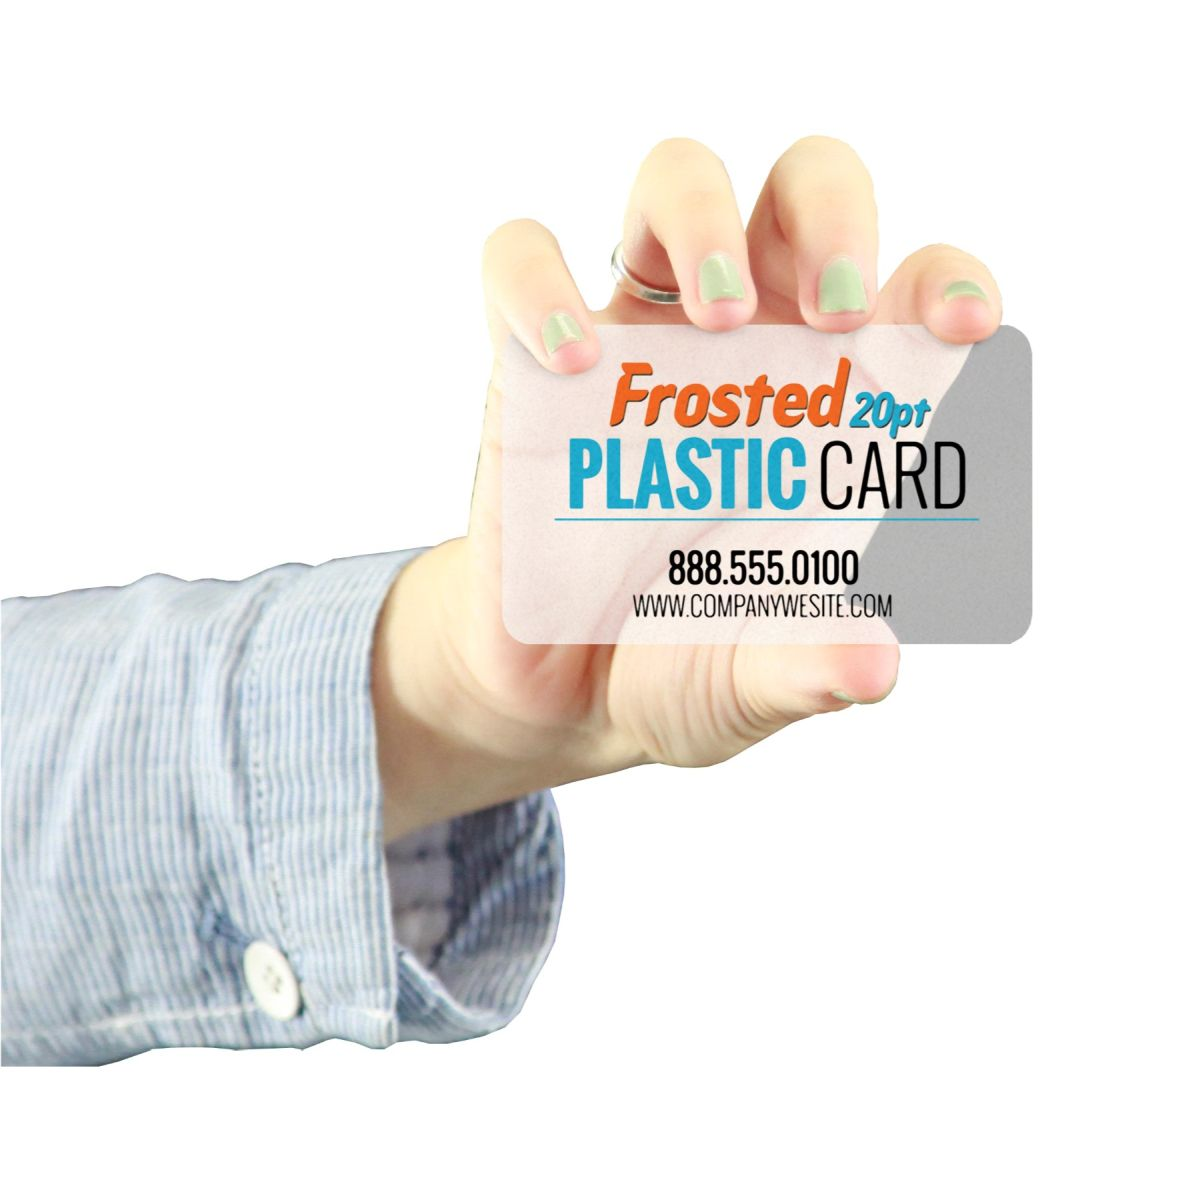 Frosted Plastic Business Card-05312018-1